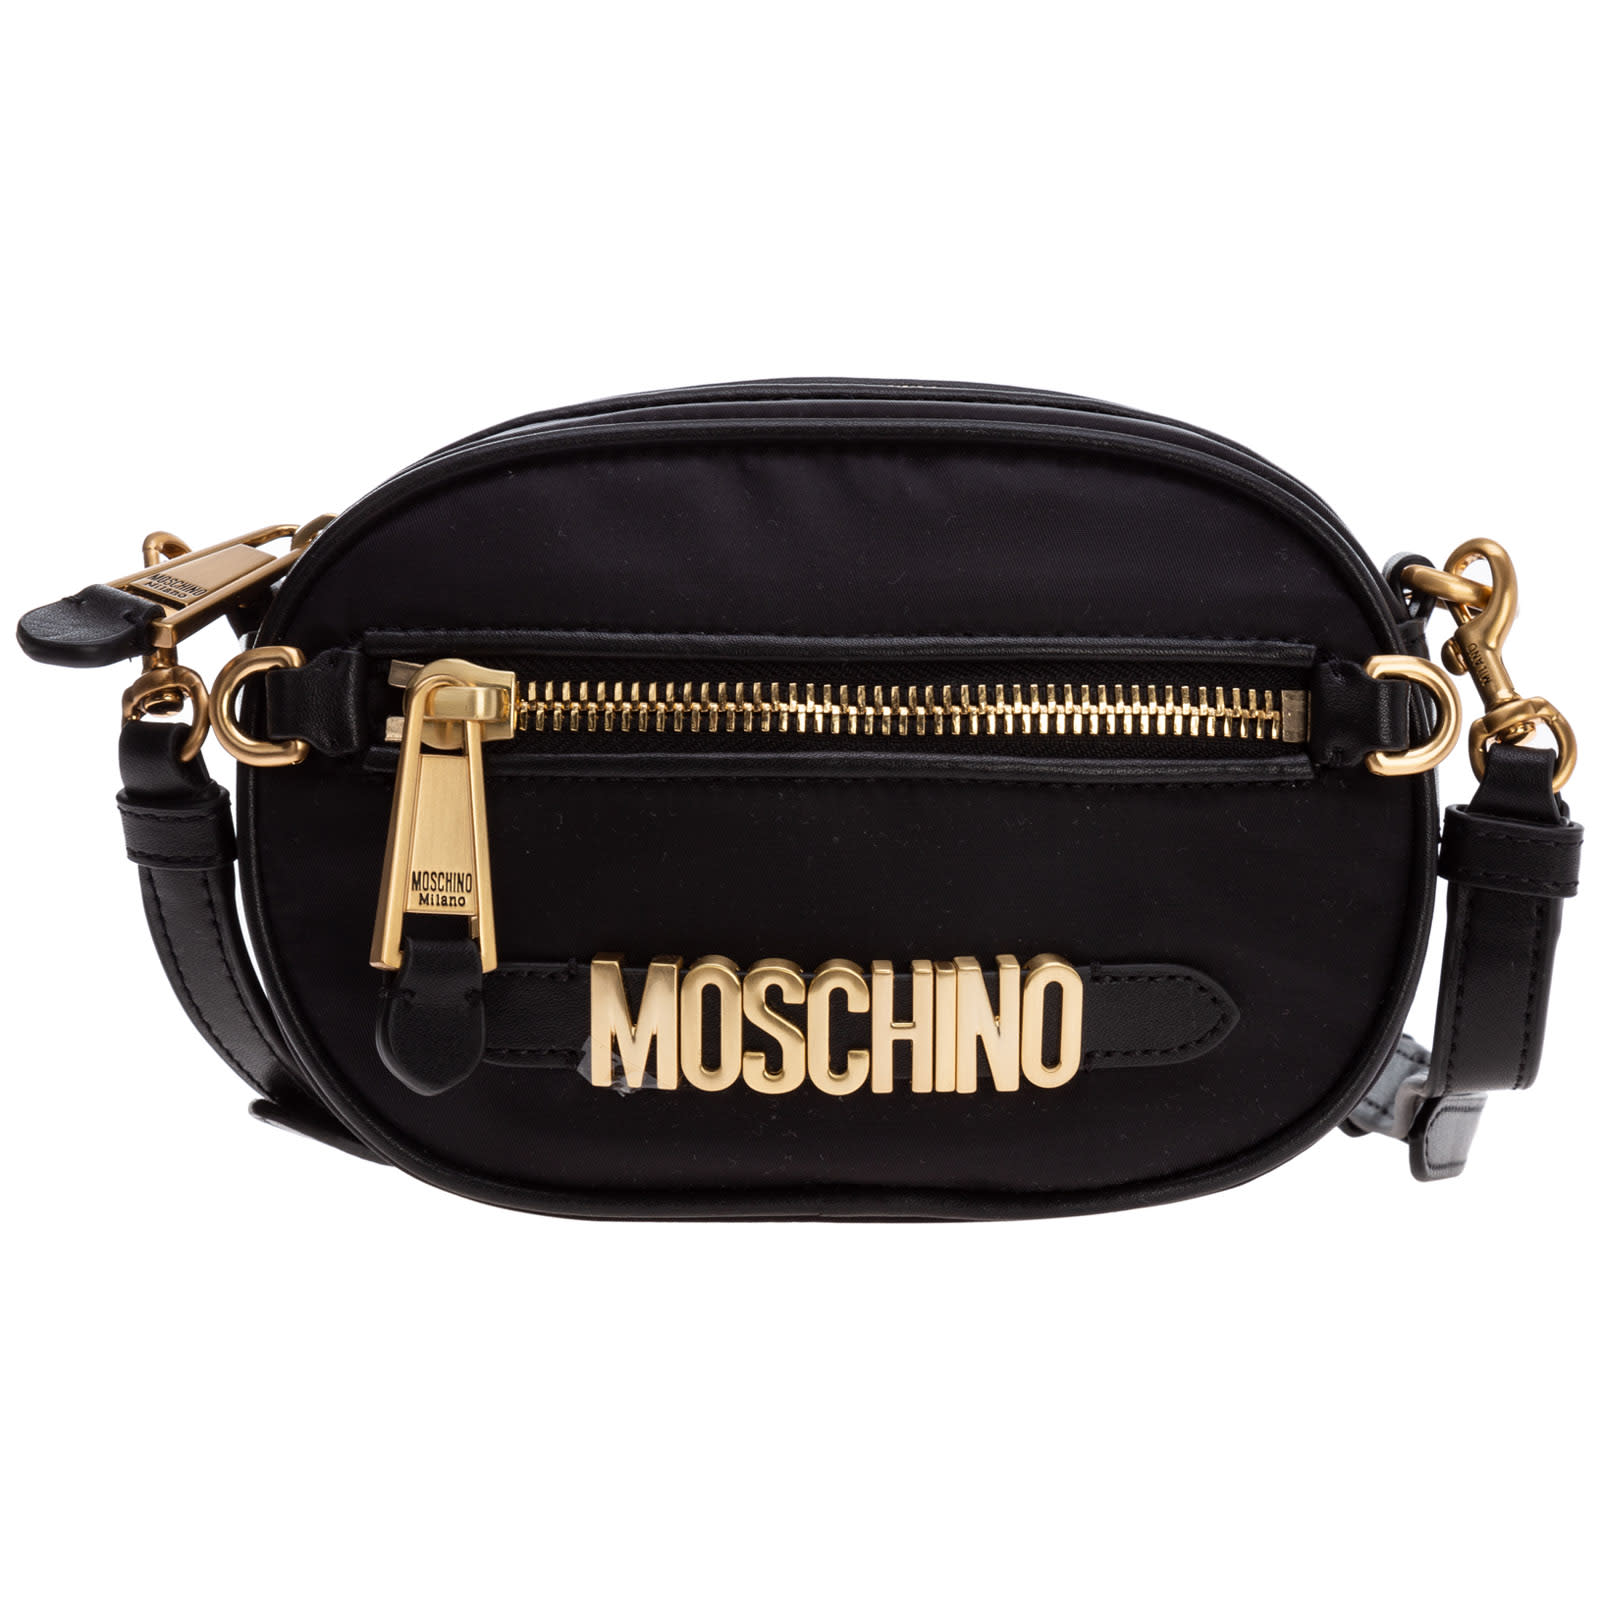 Moschino M CROSSBODY BAGS